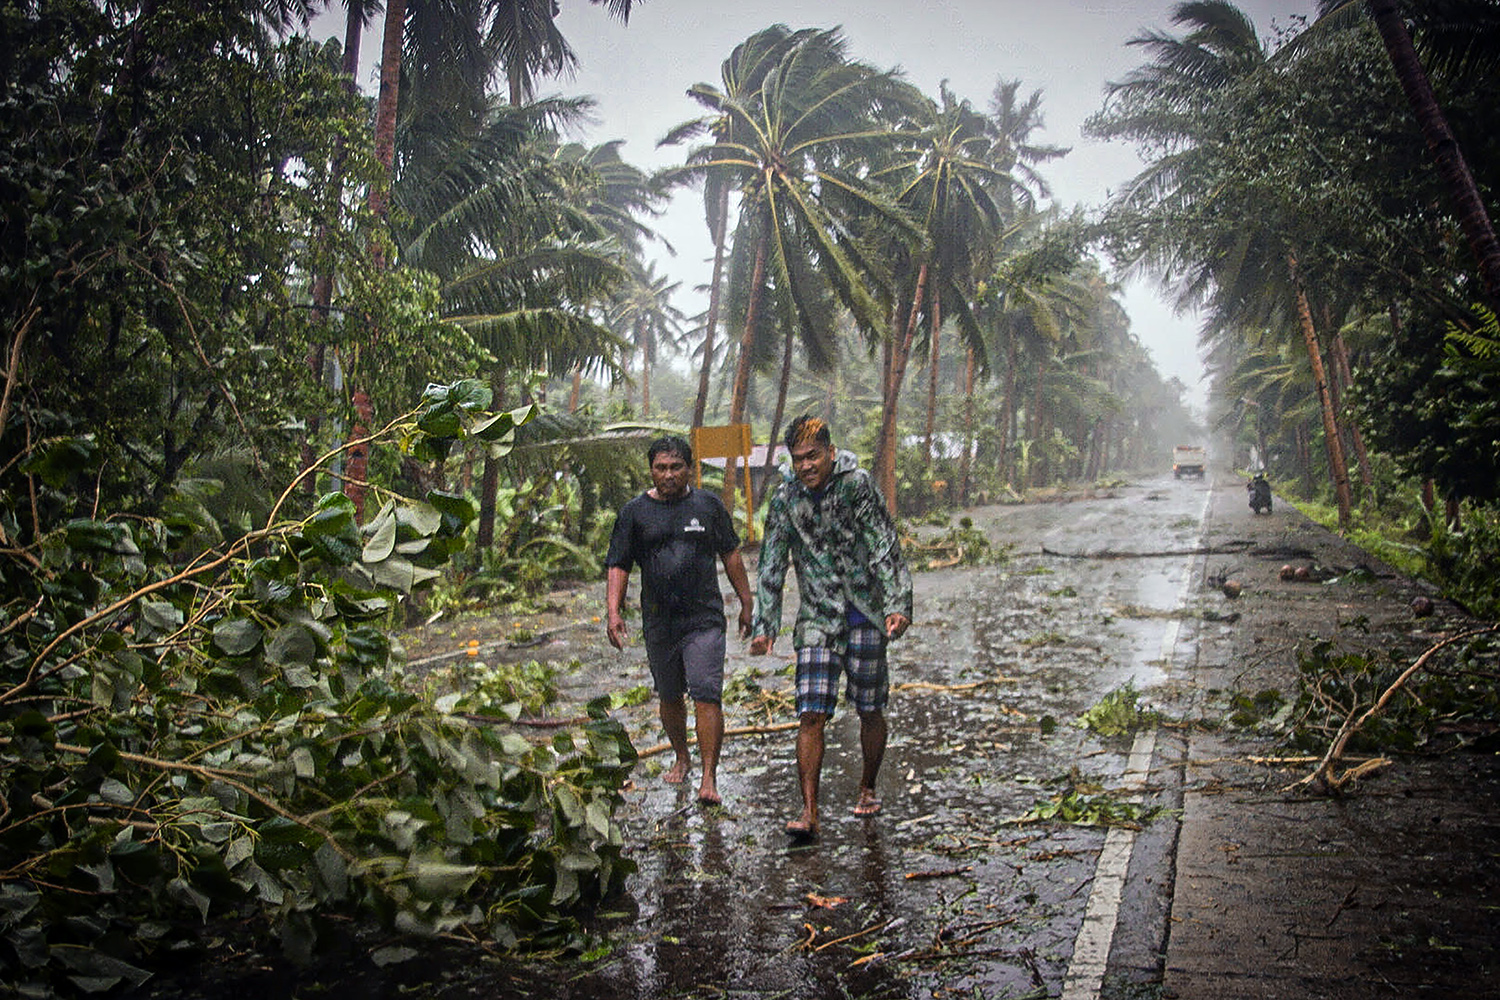 As Typhoon Vongfong makes landfall in central Philippines on May 14, residents brave the rains and strong wind on a walk along a highway in Can-avid, Samar. ALREN BERONIO/AFP via Getty Images